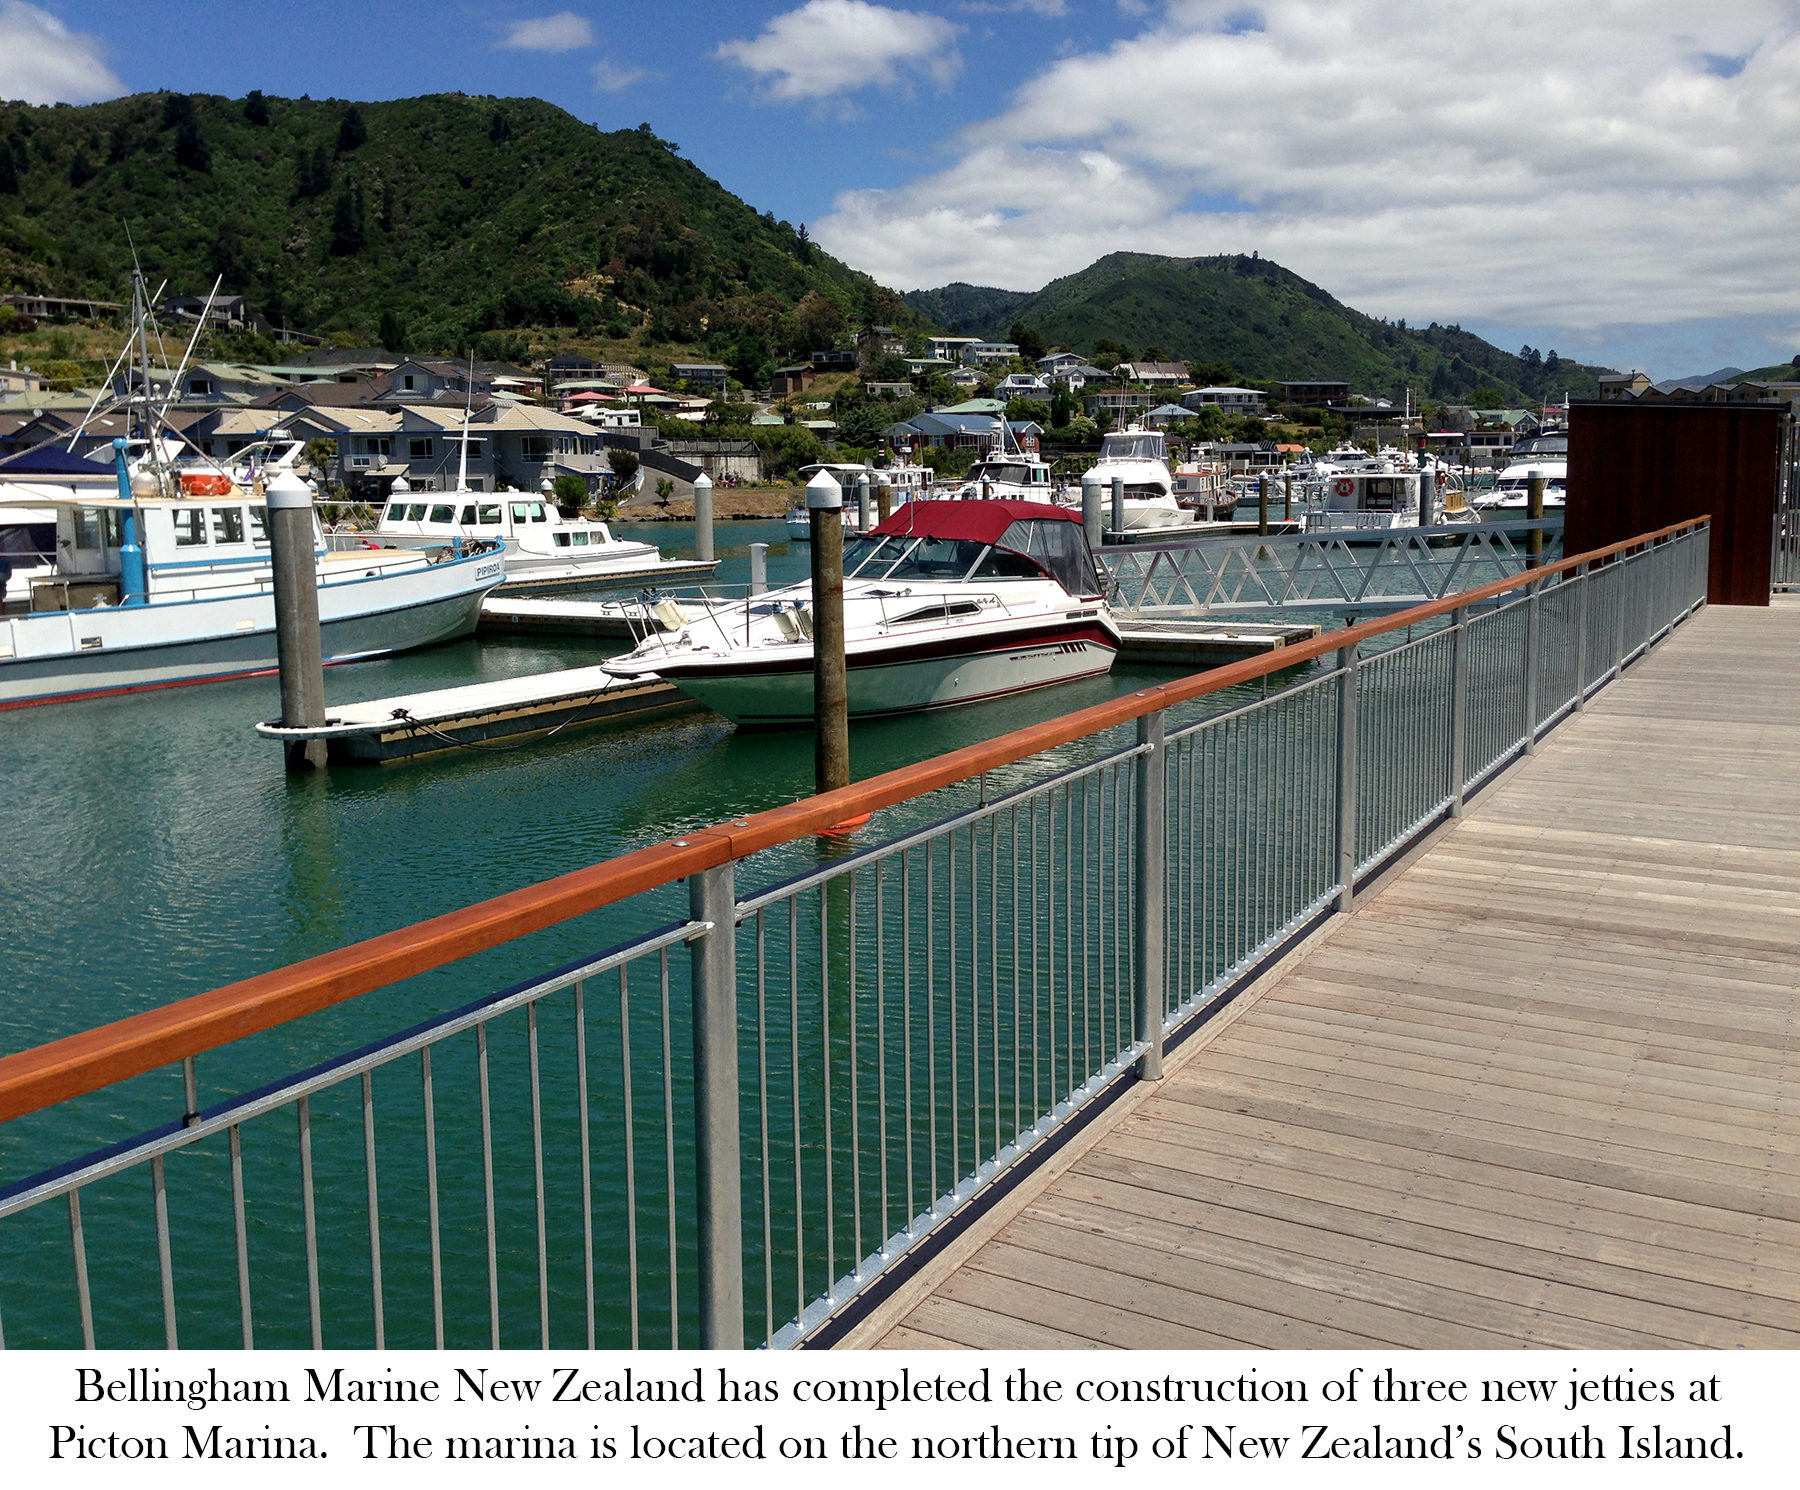 The new dock system at Picton Marina features Bellingham's concrete pontoons